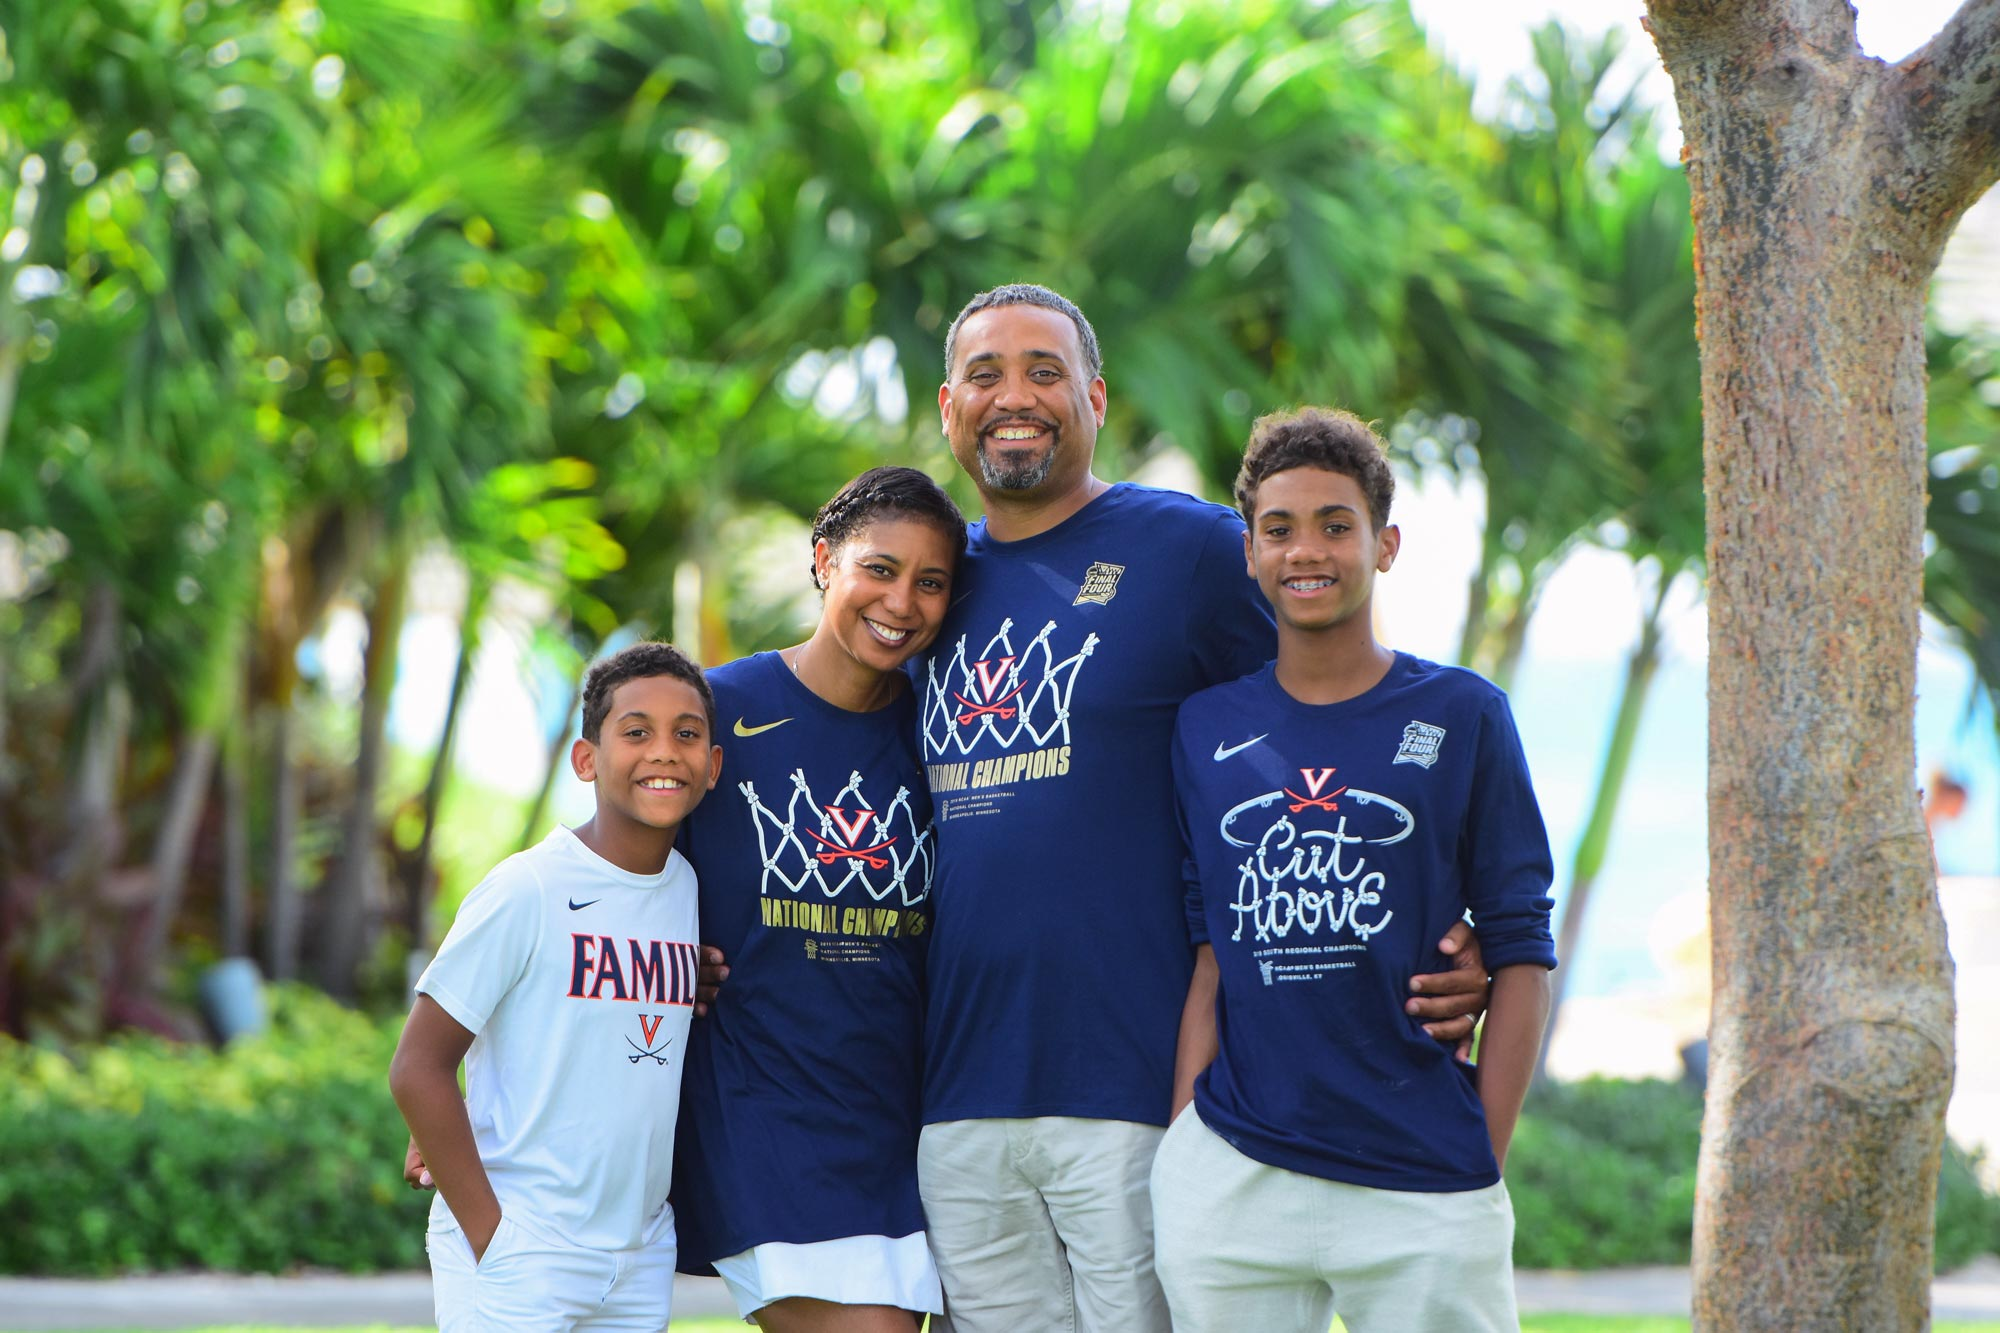 The Willifords with their sons, Cameron, left, and Austin, right, have a goal of raising $50,000 as part of Coaches vs. Cancer week, which ends Saturday.